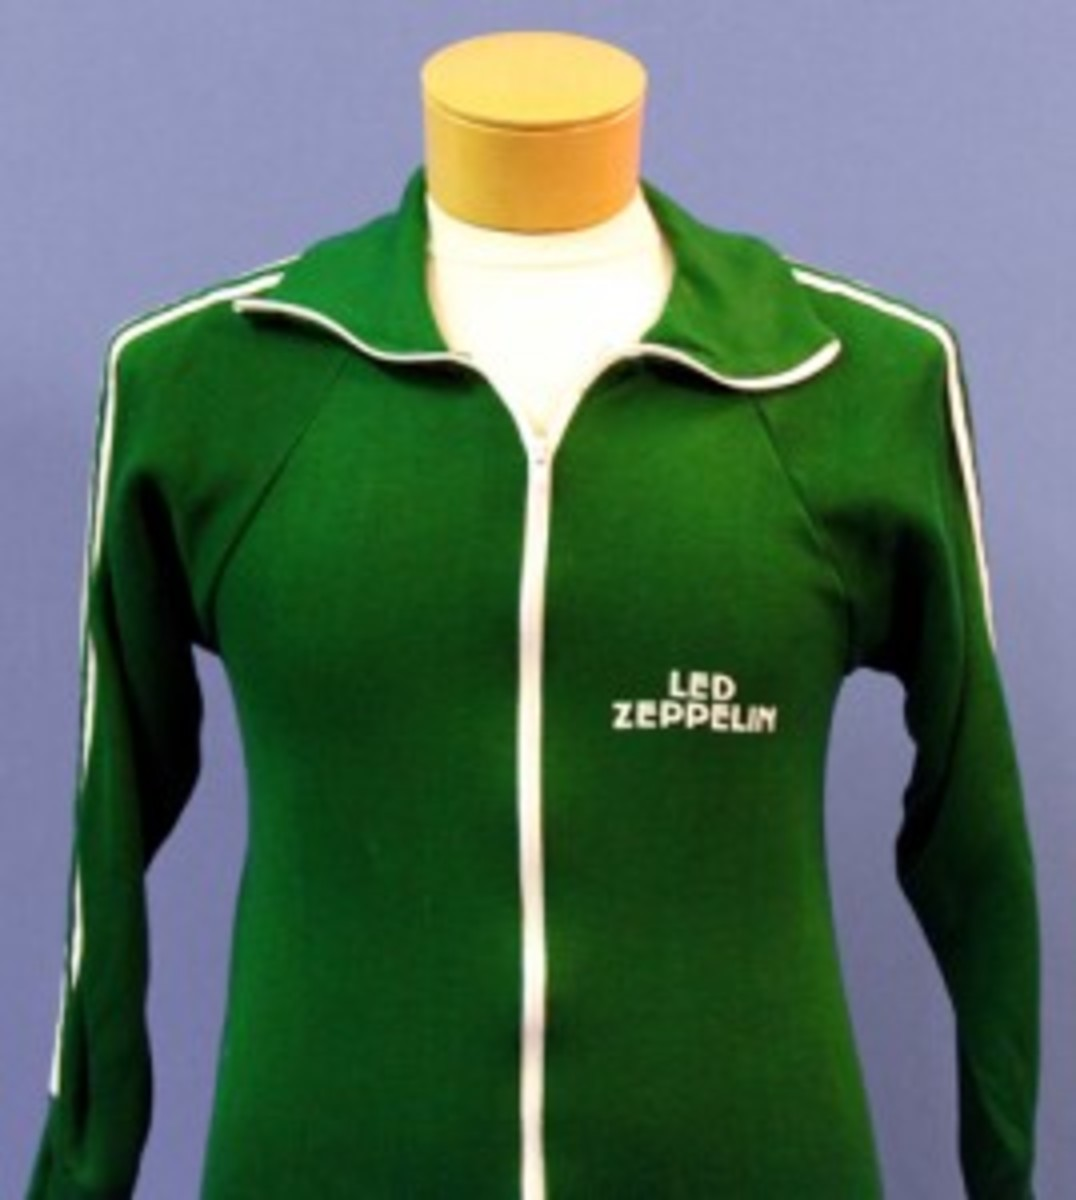 Often, better-condition promo or crew jackets and T-shirts survive only in smaller sizes. In part, that is because shirt sizes were smaller in the 1970s and 1980s, and also because many of the crew members who would be wearing the apparel would need large- or extra-large sized items. Photo courtesy Backstage Auctions.